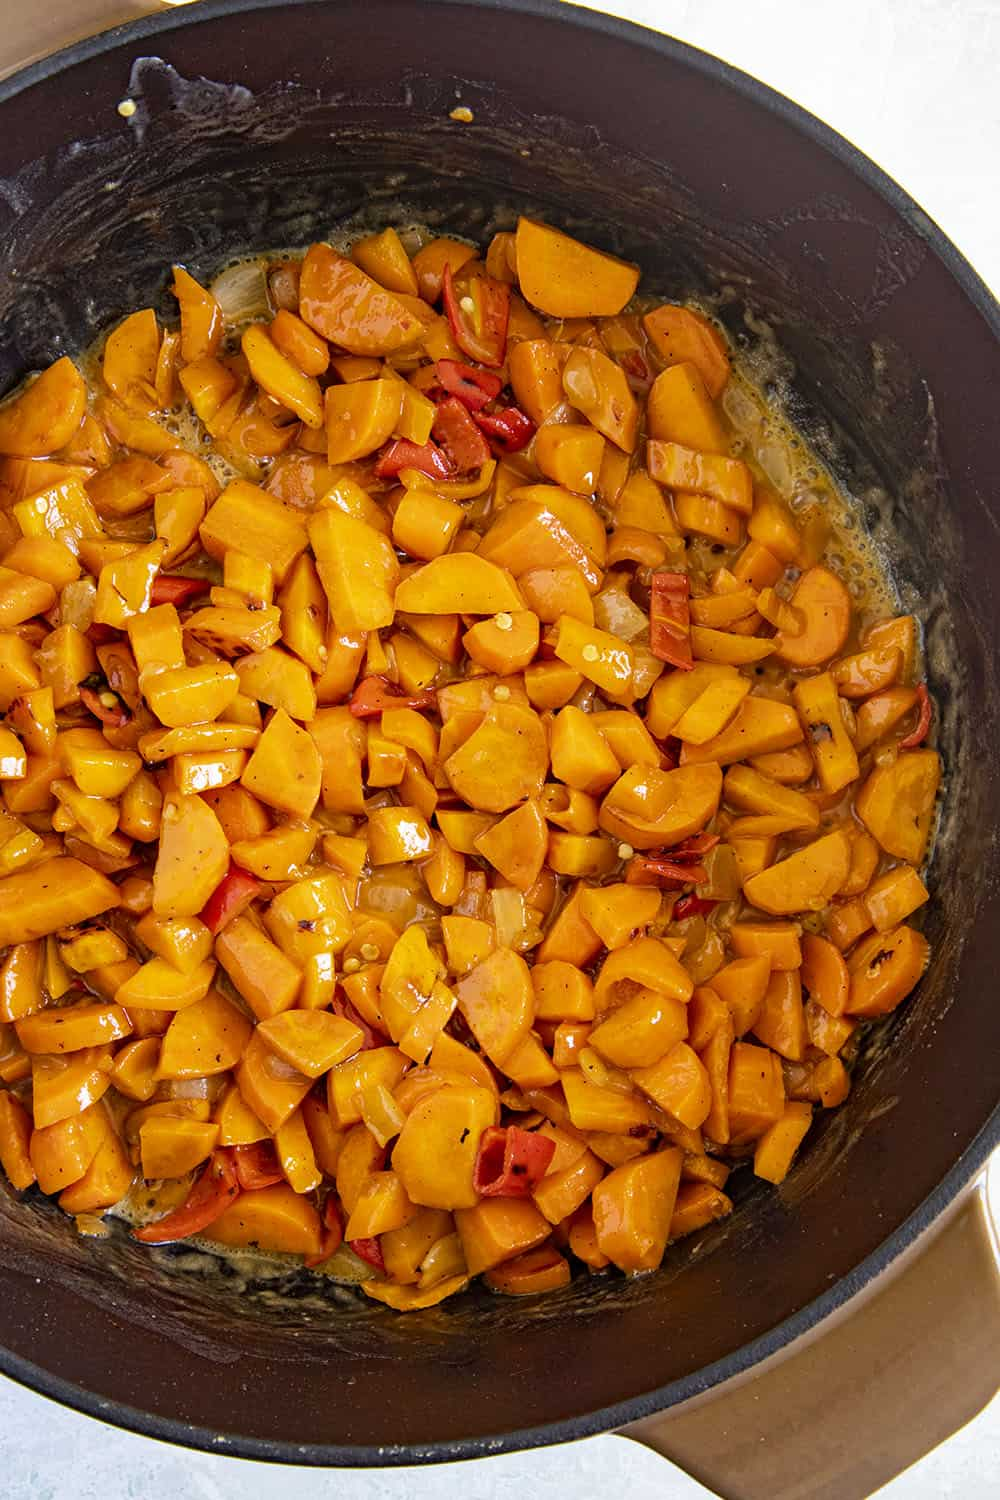 Add the carrots and peppers to the roux